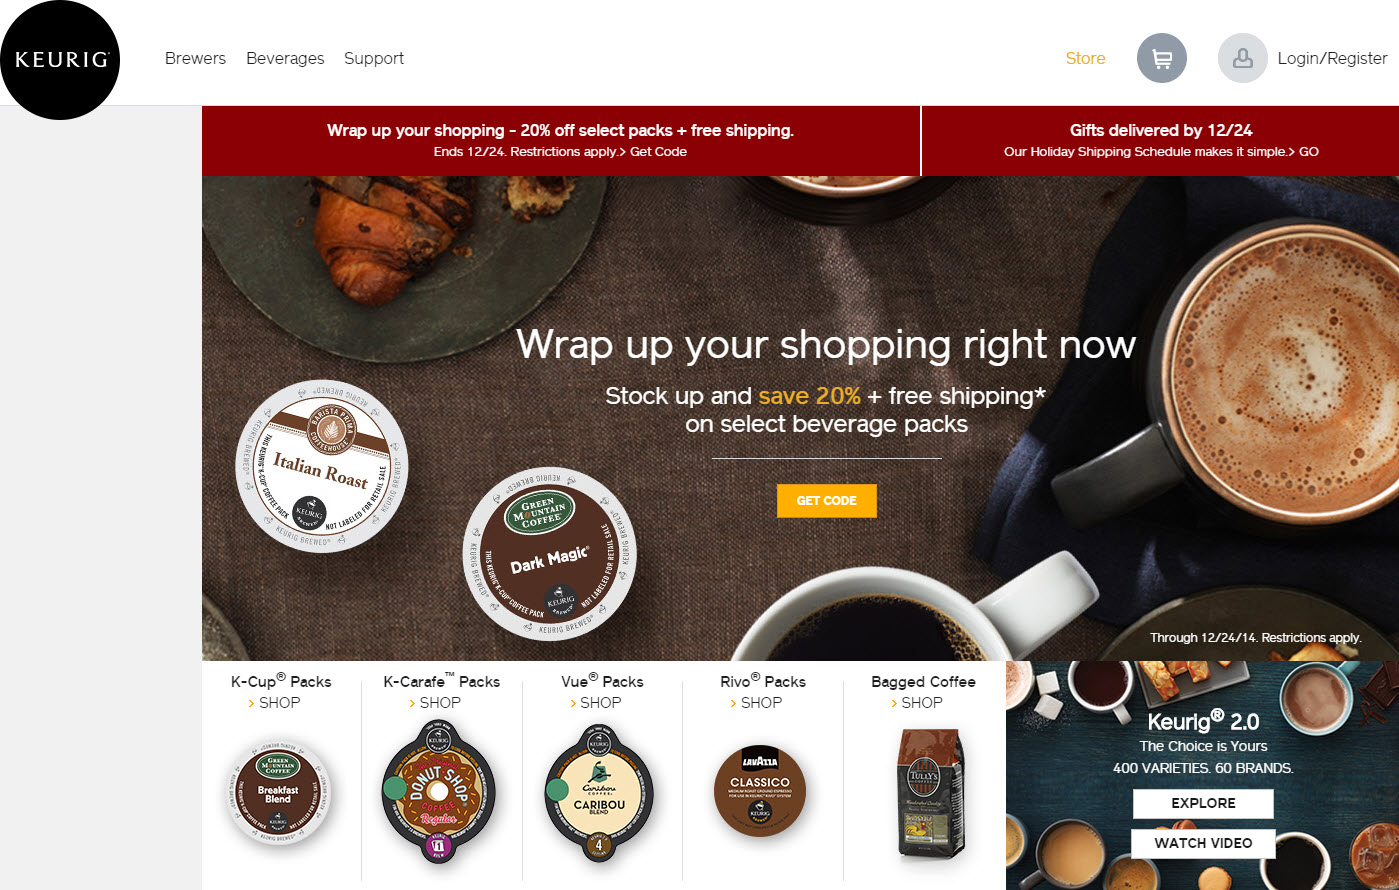 Keurig's home page is already focused primarily on K-Cups and other coffee packs. Chances are this site will be hit hard starting December 25.